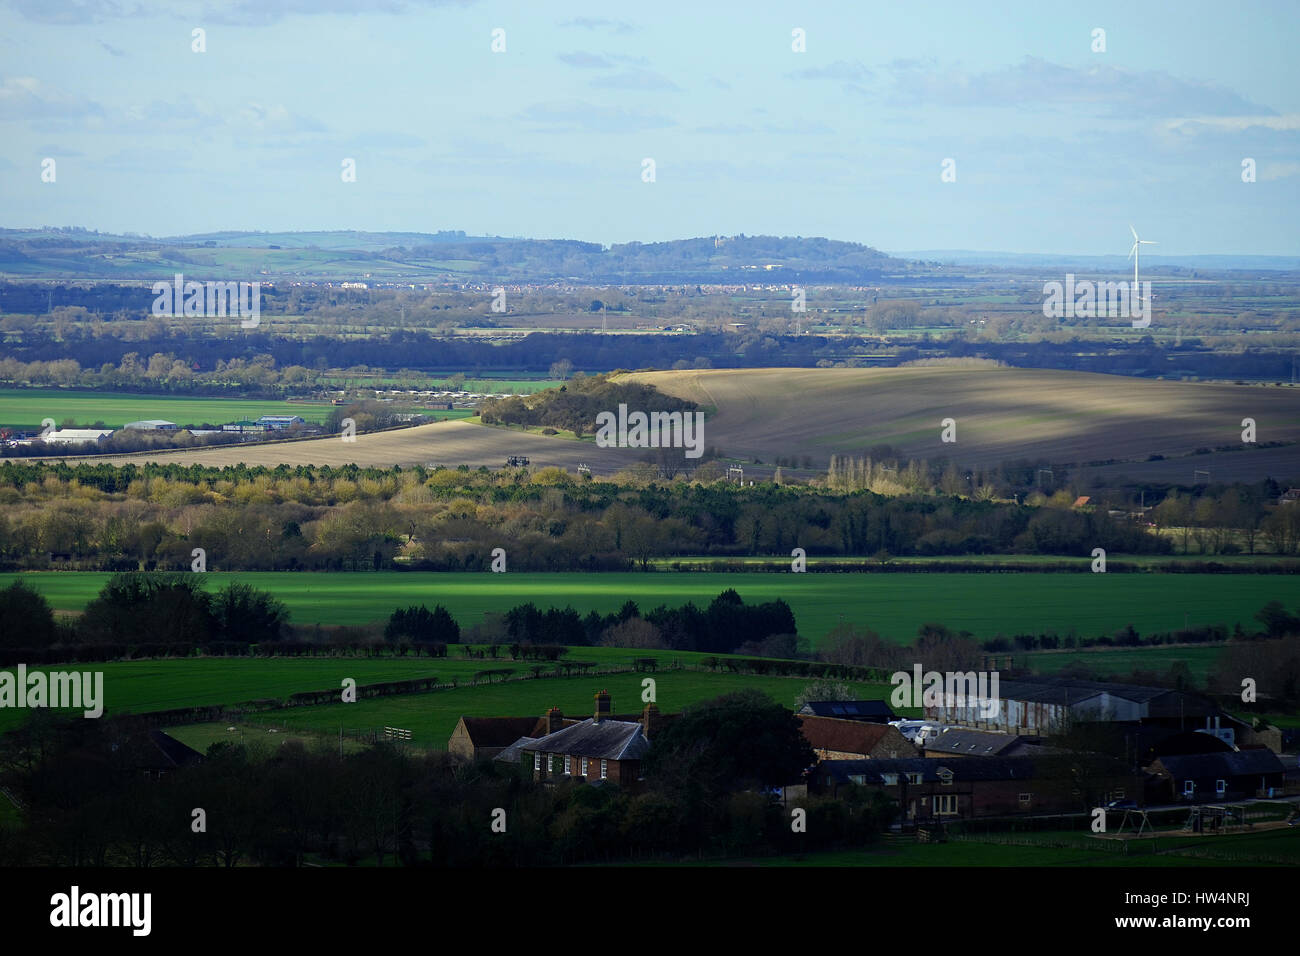 The view towards Waddesdon from Pitstone Hill - Stock Image